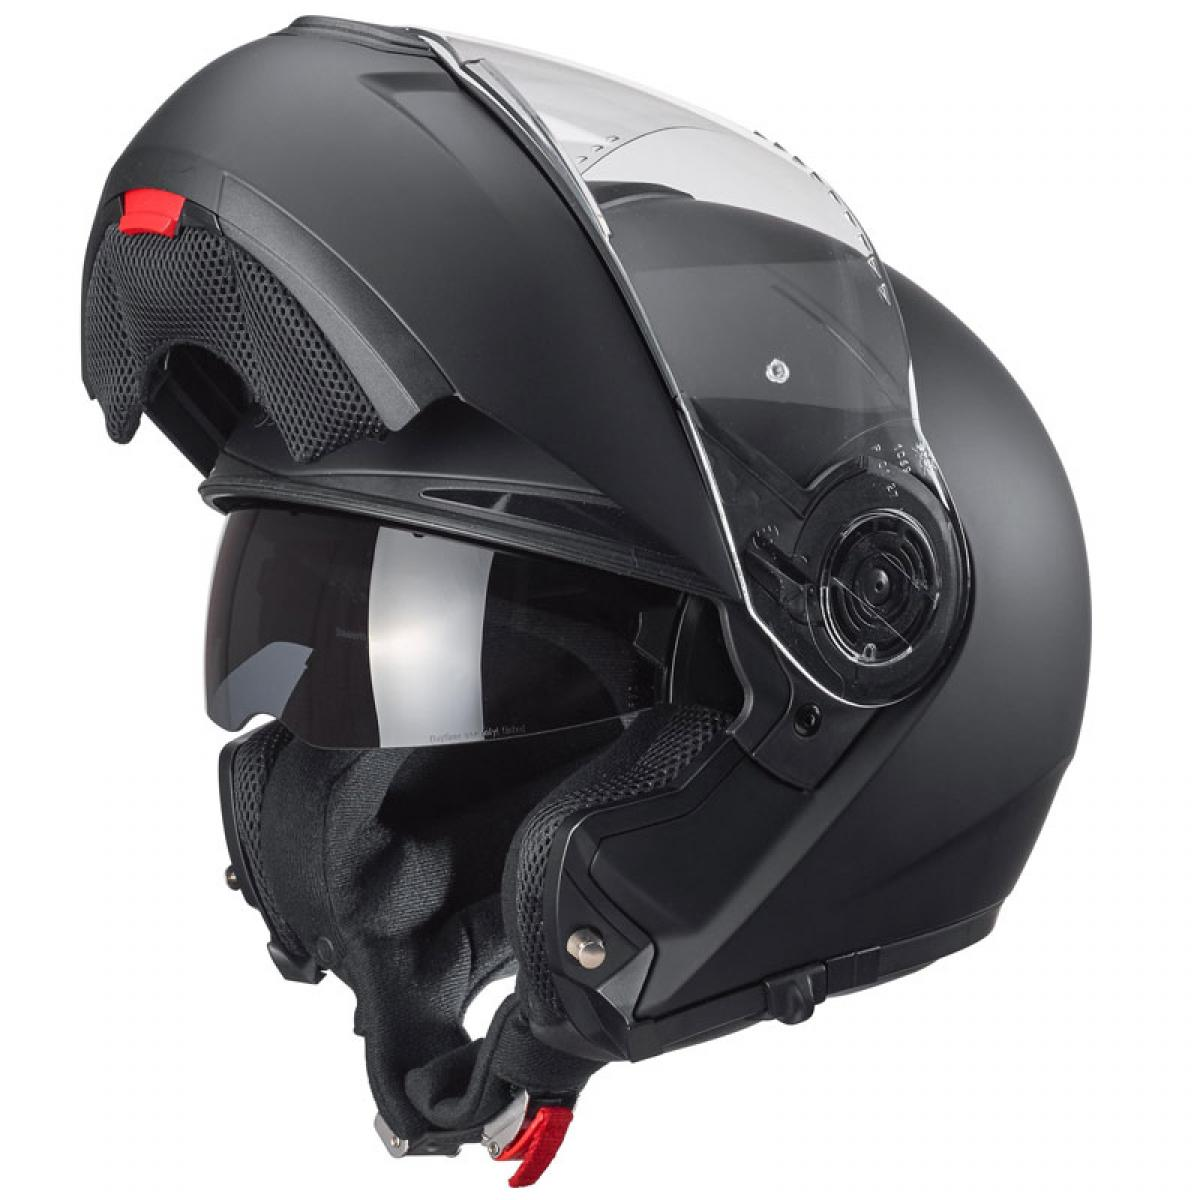 Quietest Motorcycle Helmet Uk